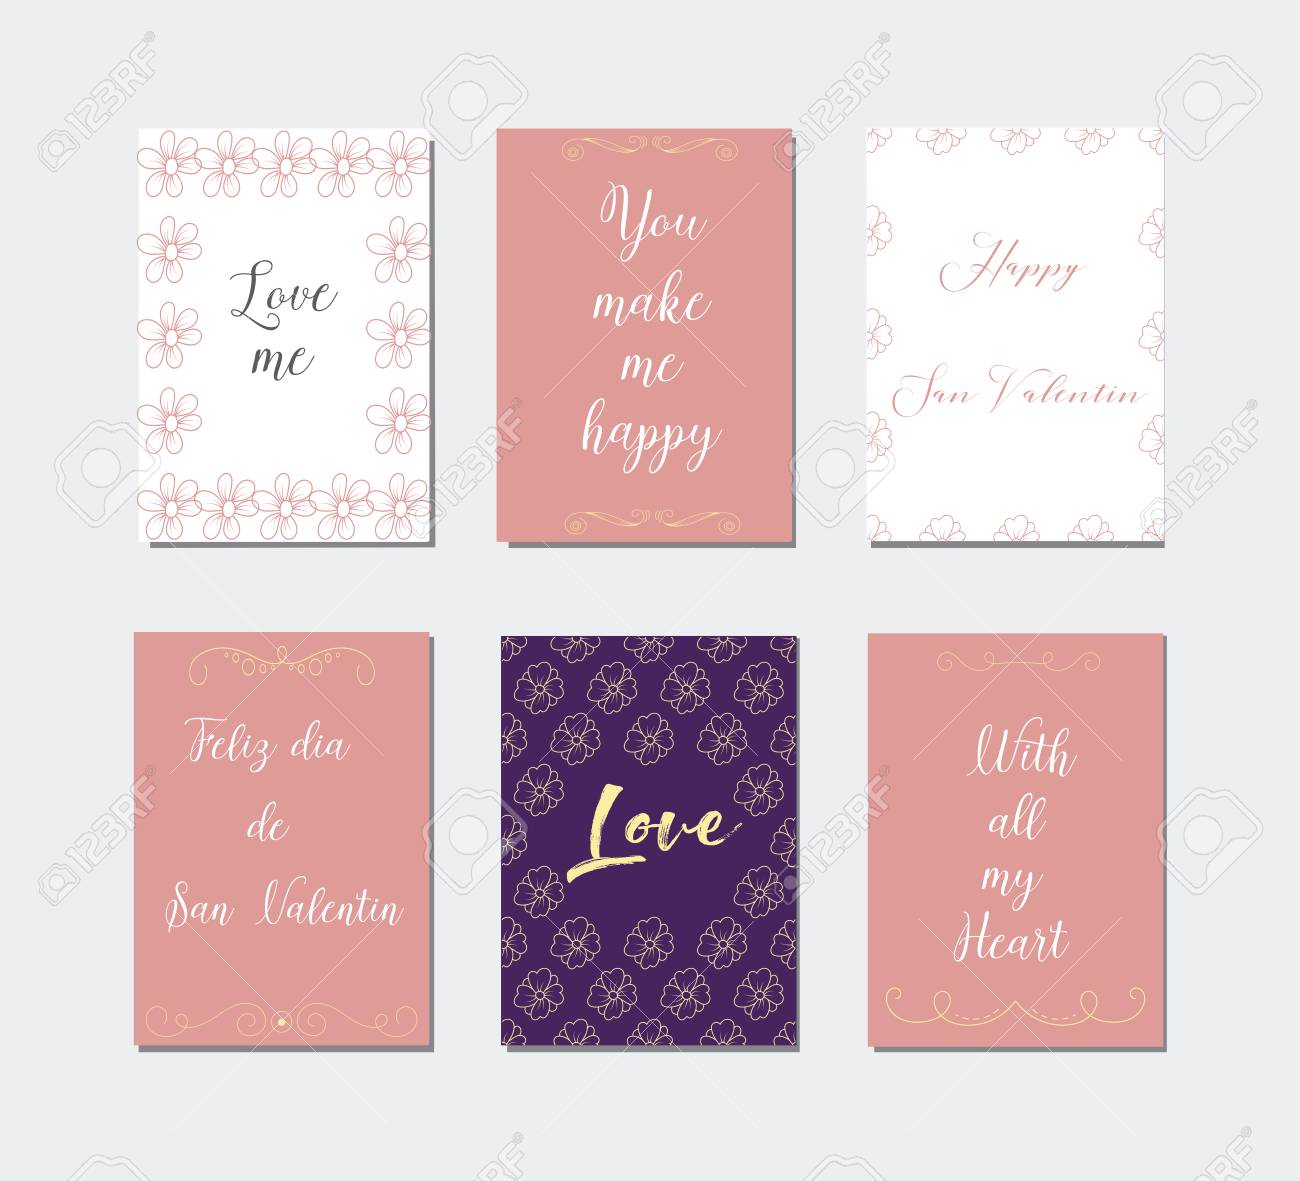 Decorative greeting cards for valentines daytypography sete decorative greeting cards for valentines daytypography sete main symbols of the holiday m4hsunfo